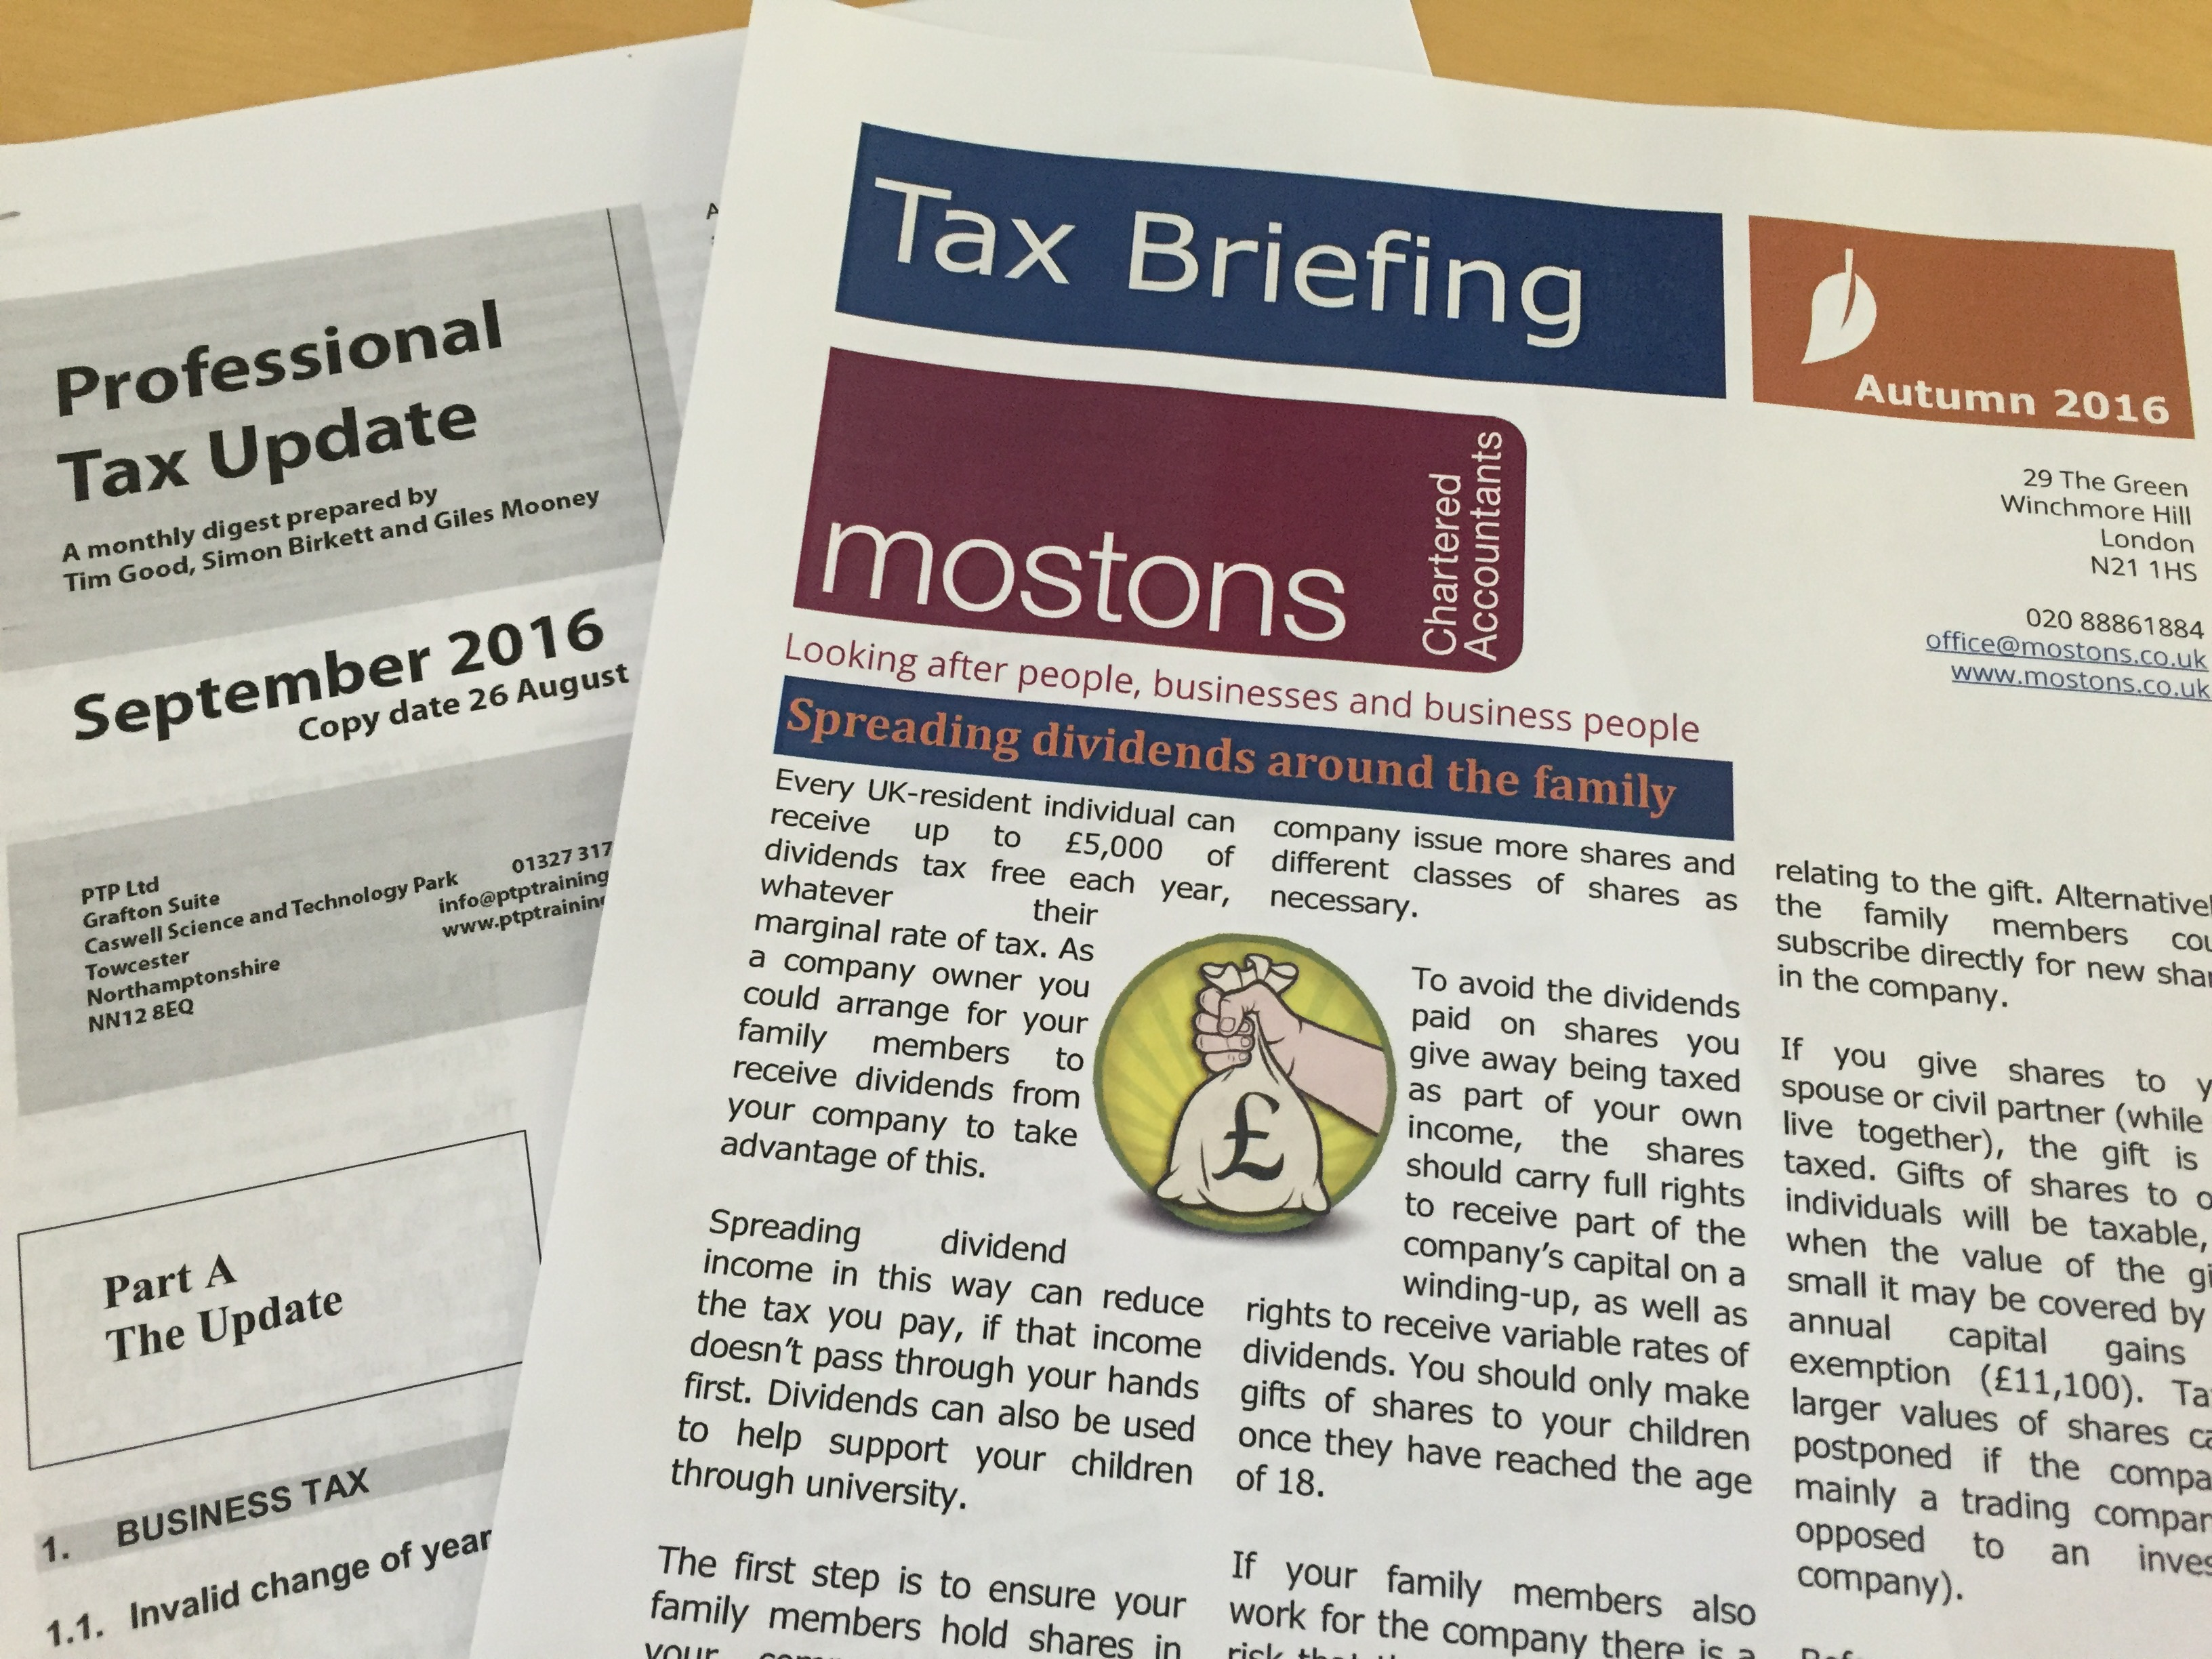 Tax update and Newsletter